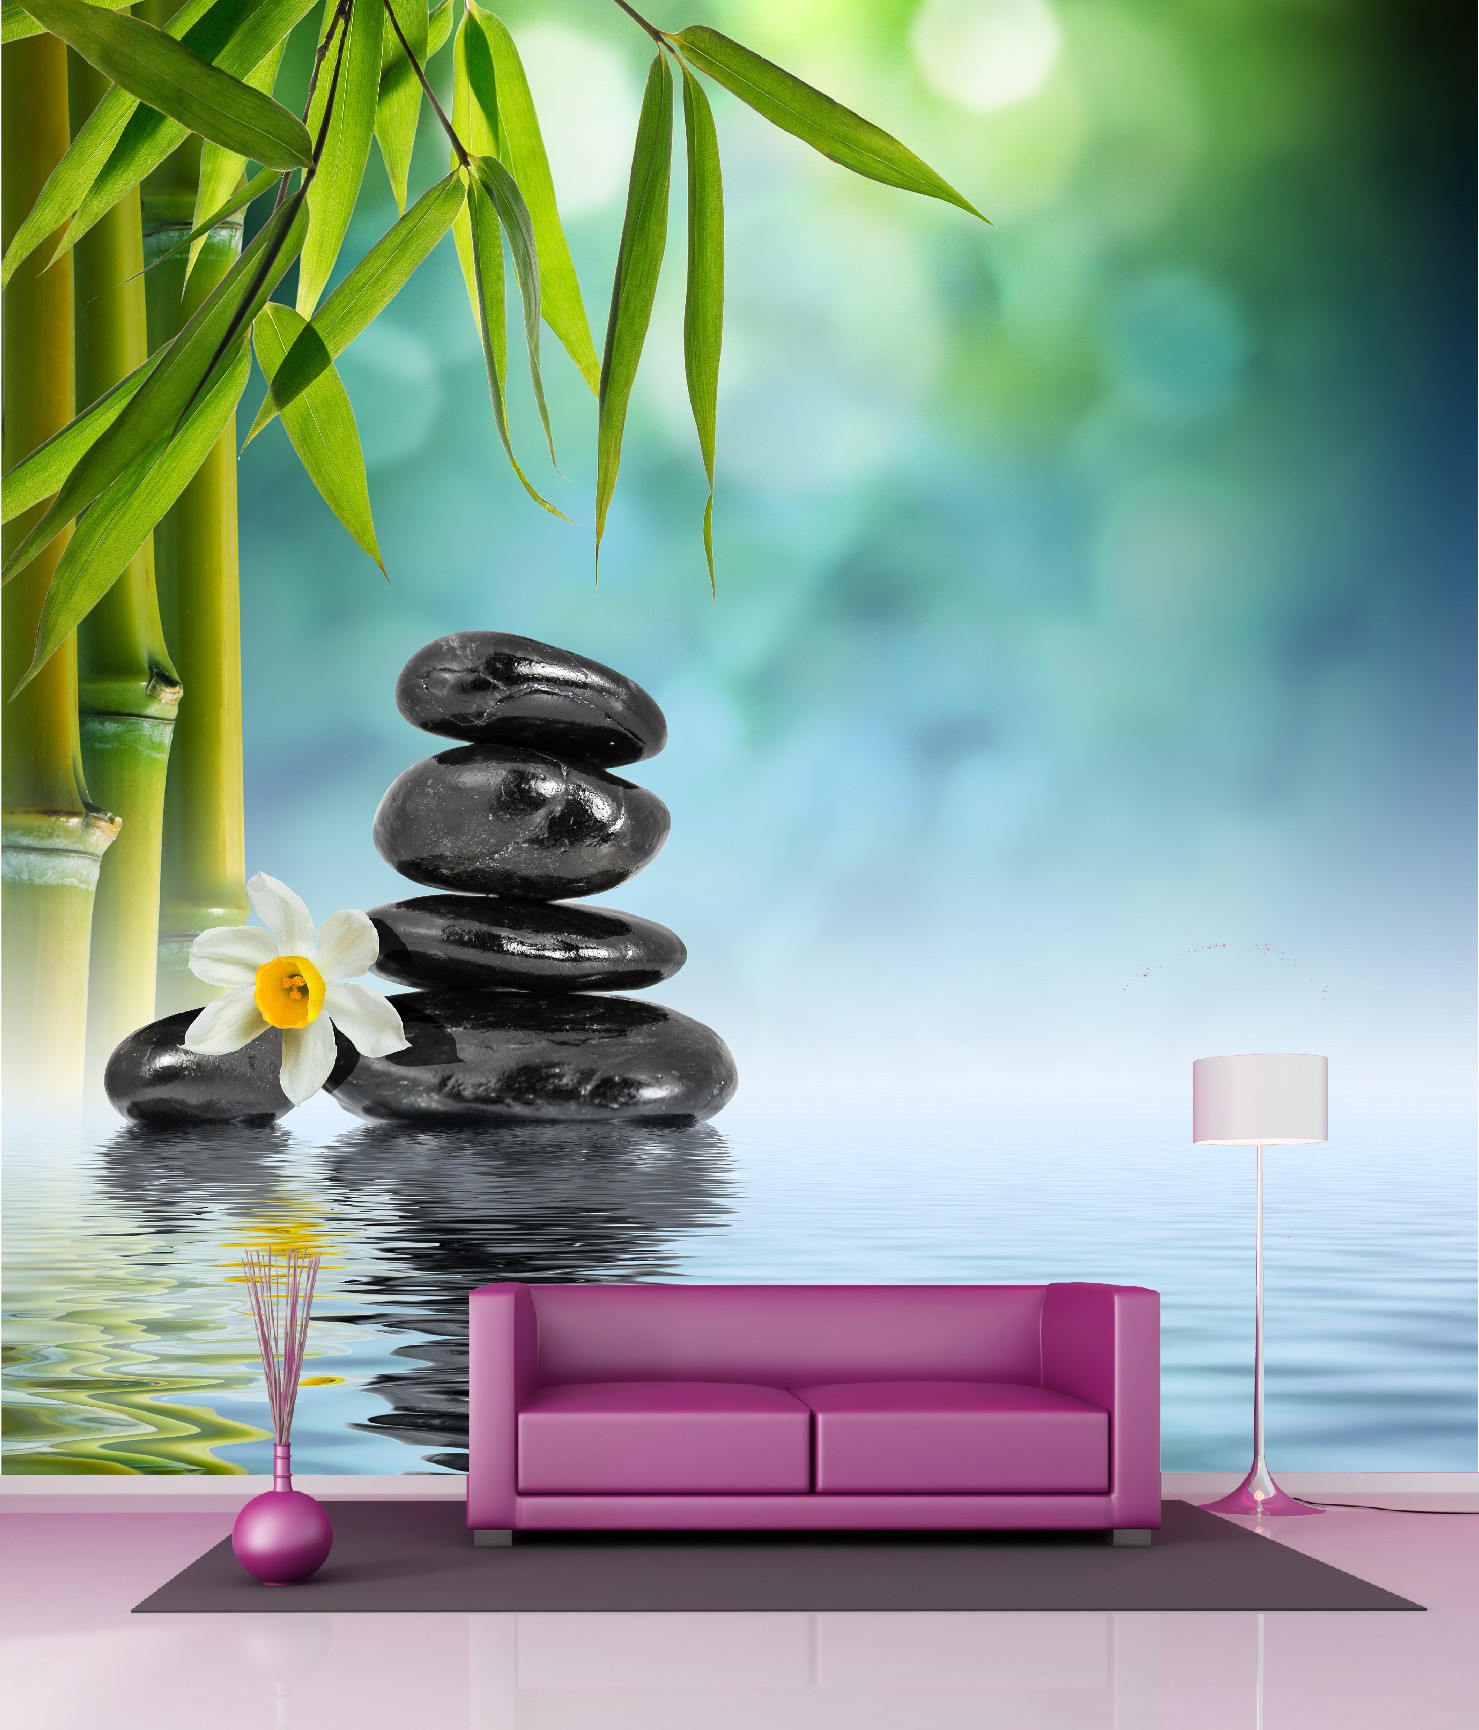 poster xxl zen awesome awesome poster mural zen with poster mural zen with poster xxl zen. Black Bedroom Furniture Sets. Home Design Ideas